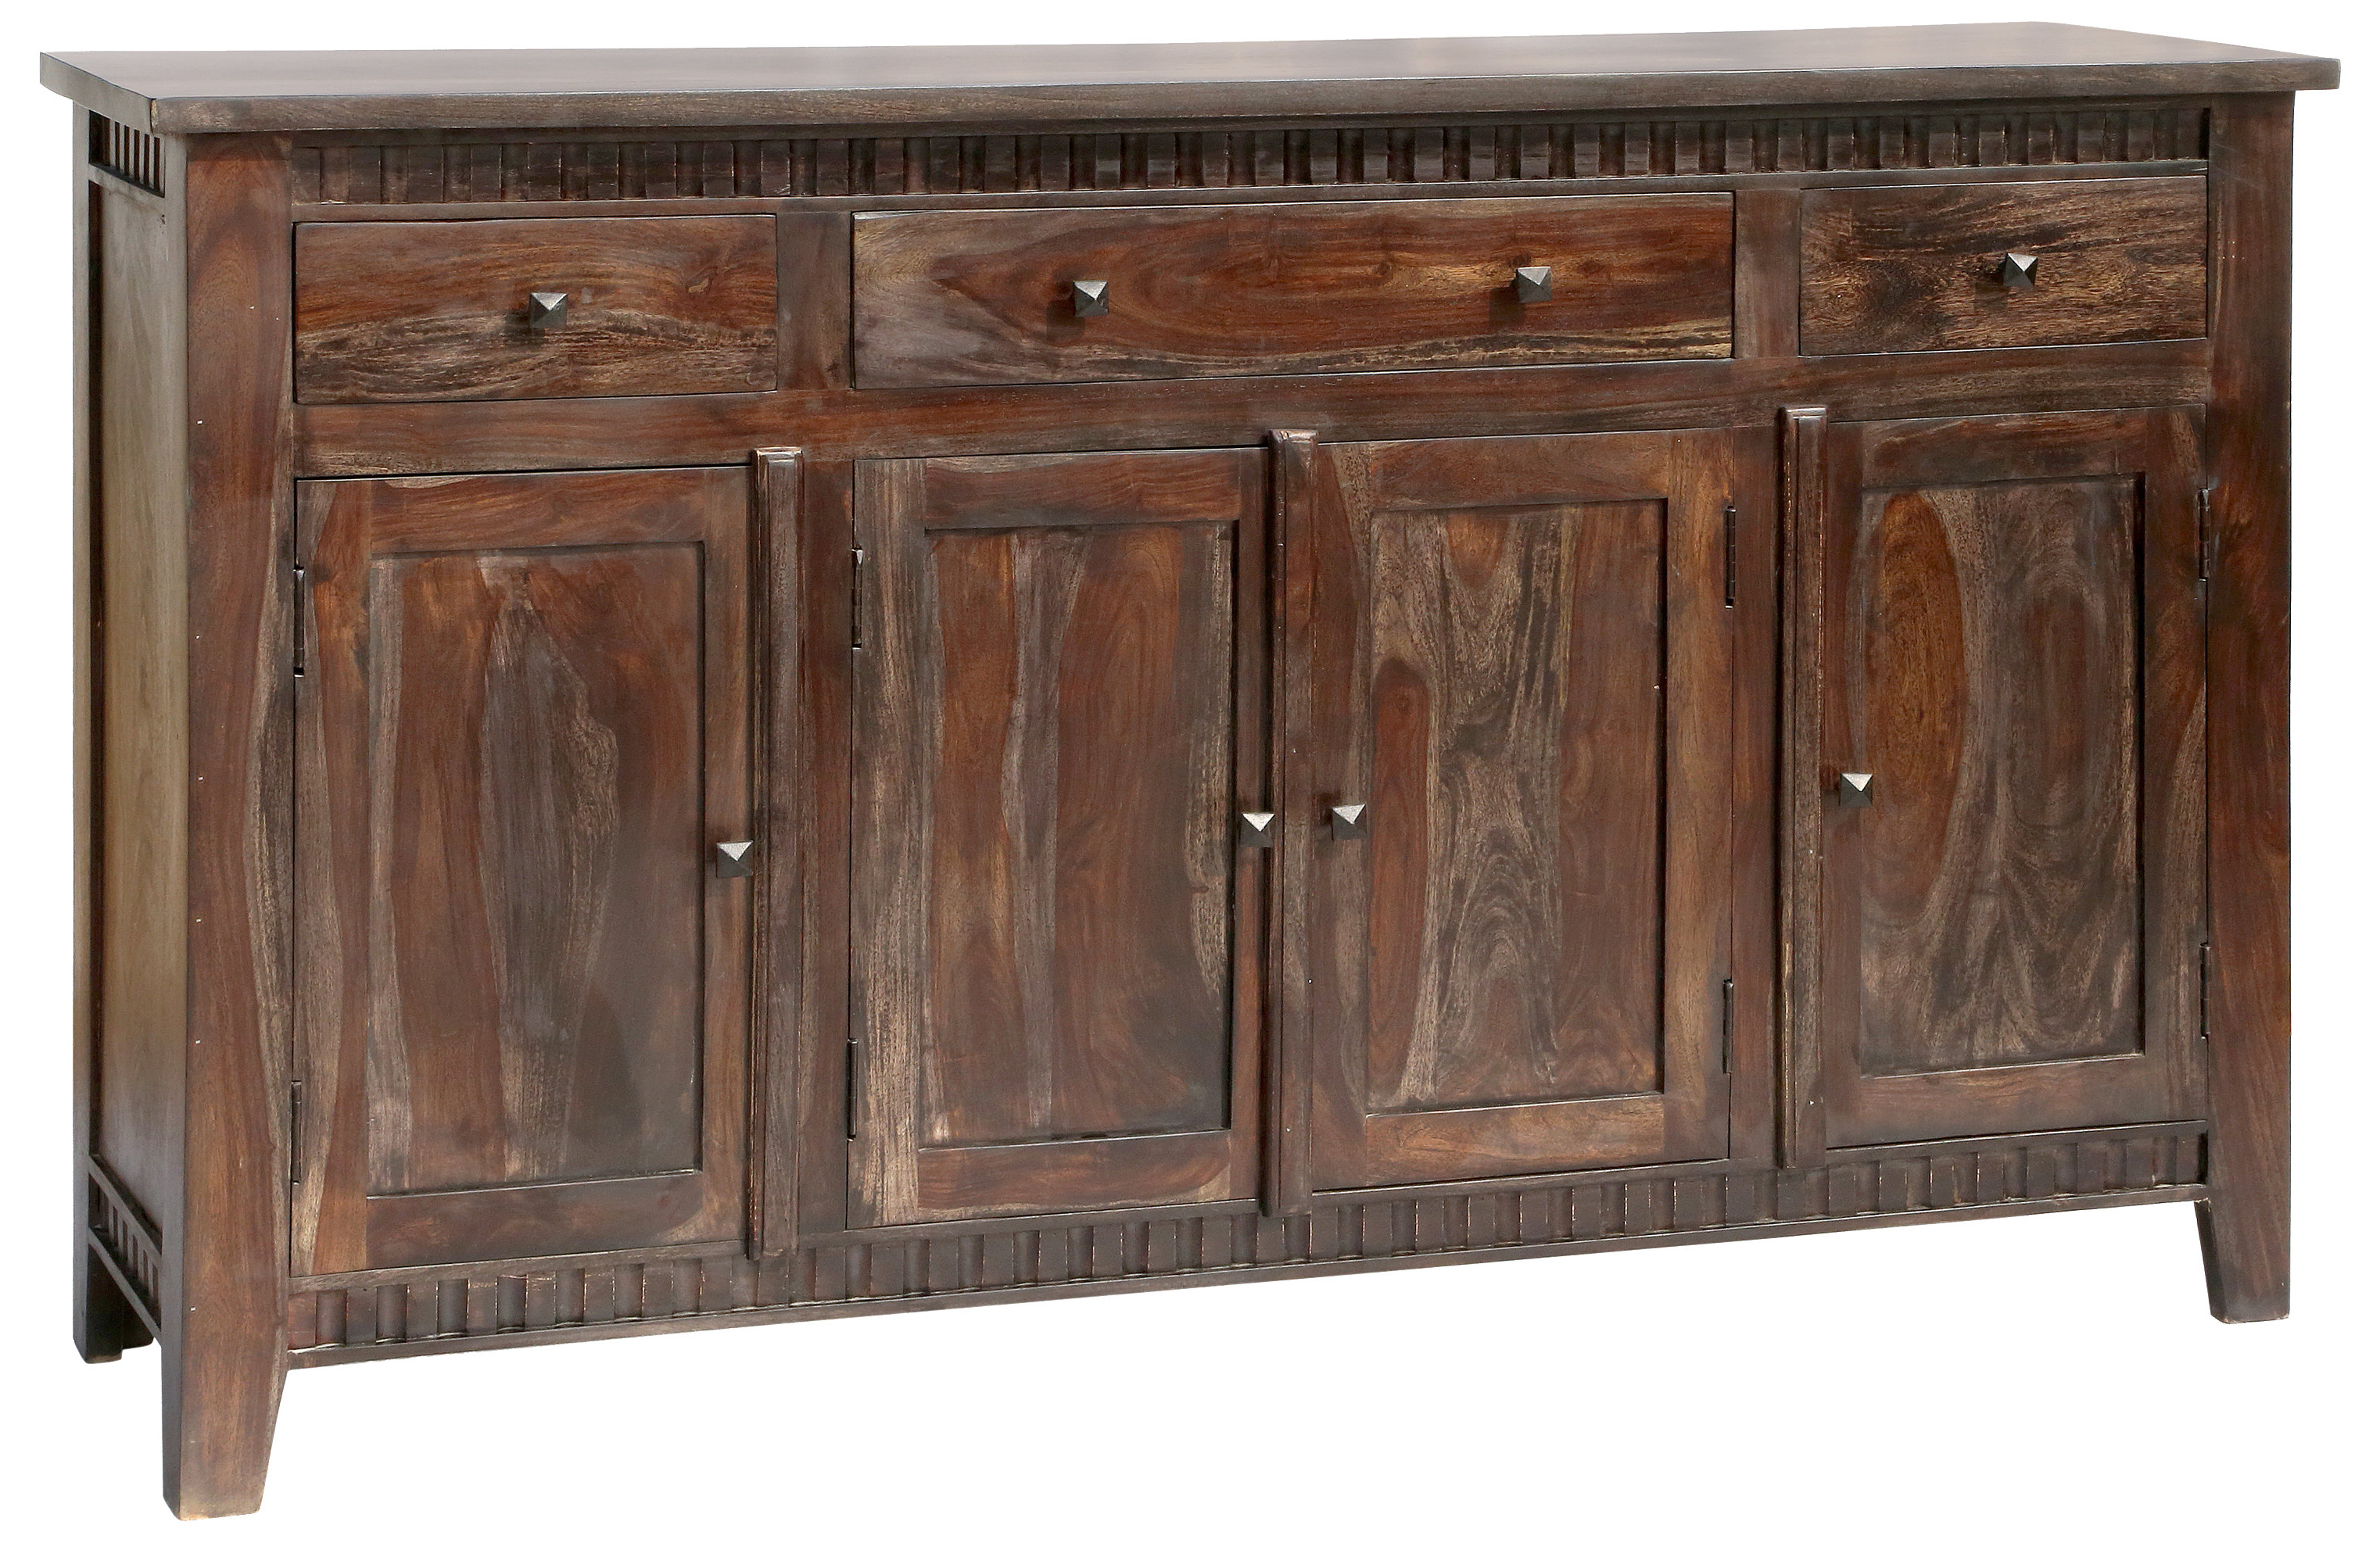 3 Drawer Sideboard | Wayfair With Regard To Drummond 4 Drawer Sideboards (View 10 of 20)